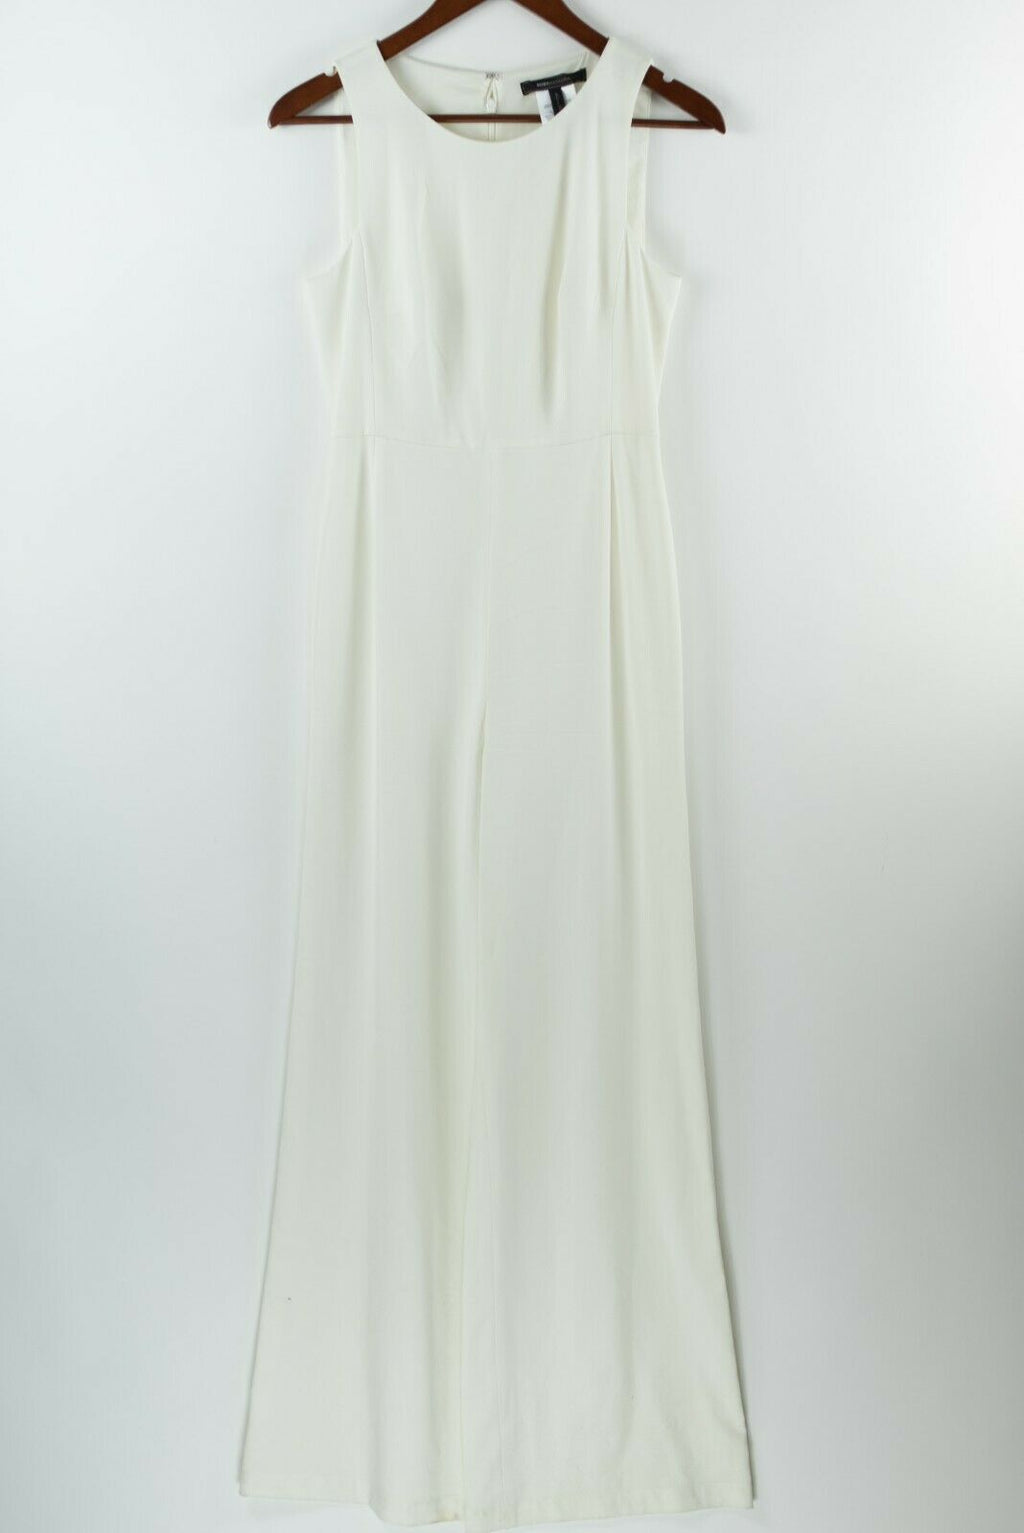 BCBG Max Azria Womens Size 2 XS White Ivory Jumpsuit Pants Sleeveless Wide Leg